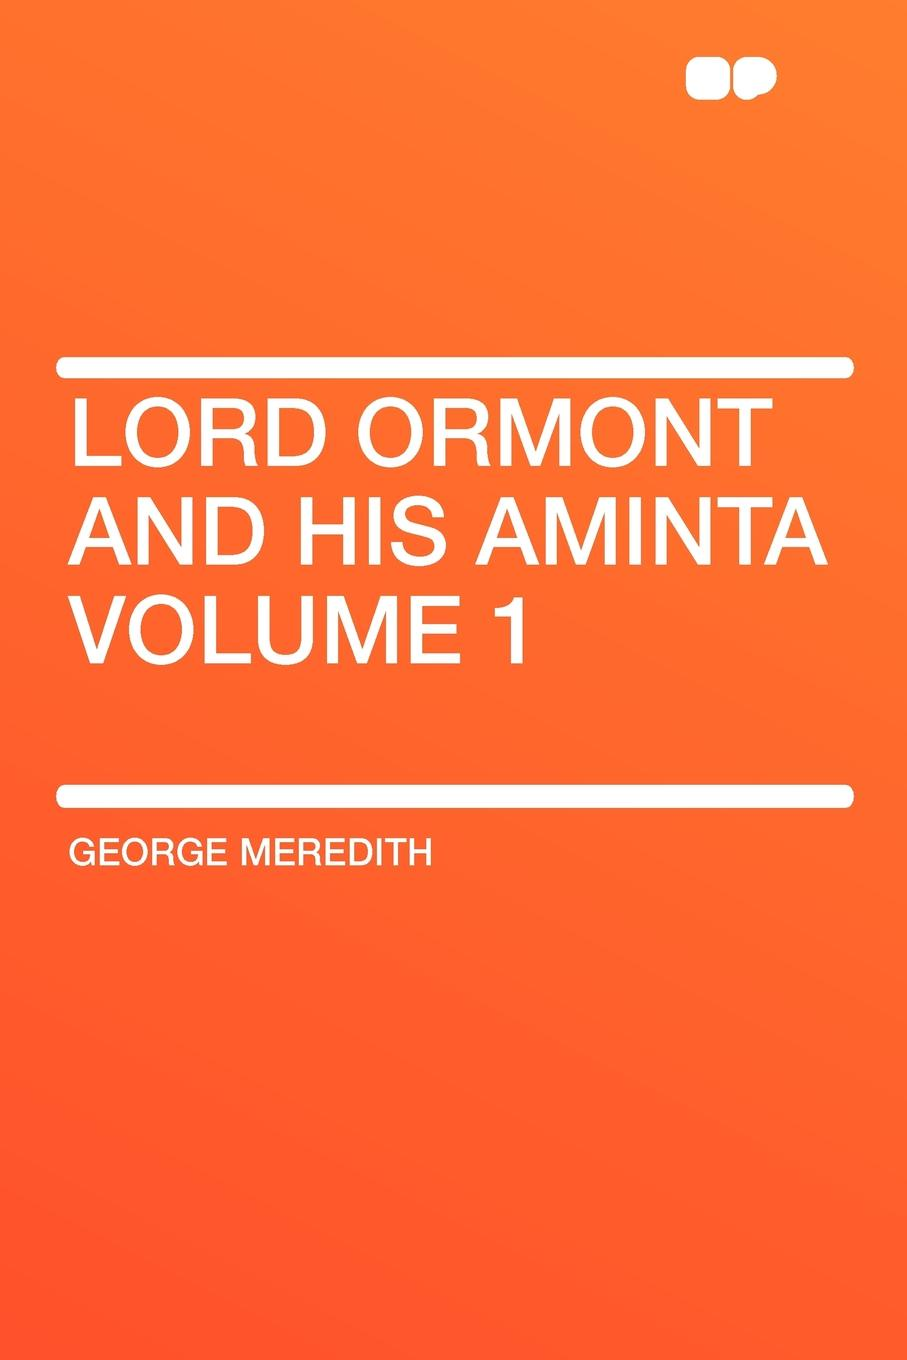 George Meredith Lord Ormont and His Aminta Volume 1 george meredith lord ormont and his aminta complete